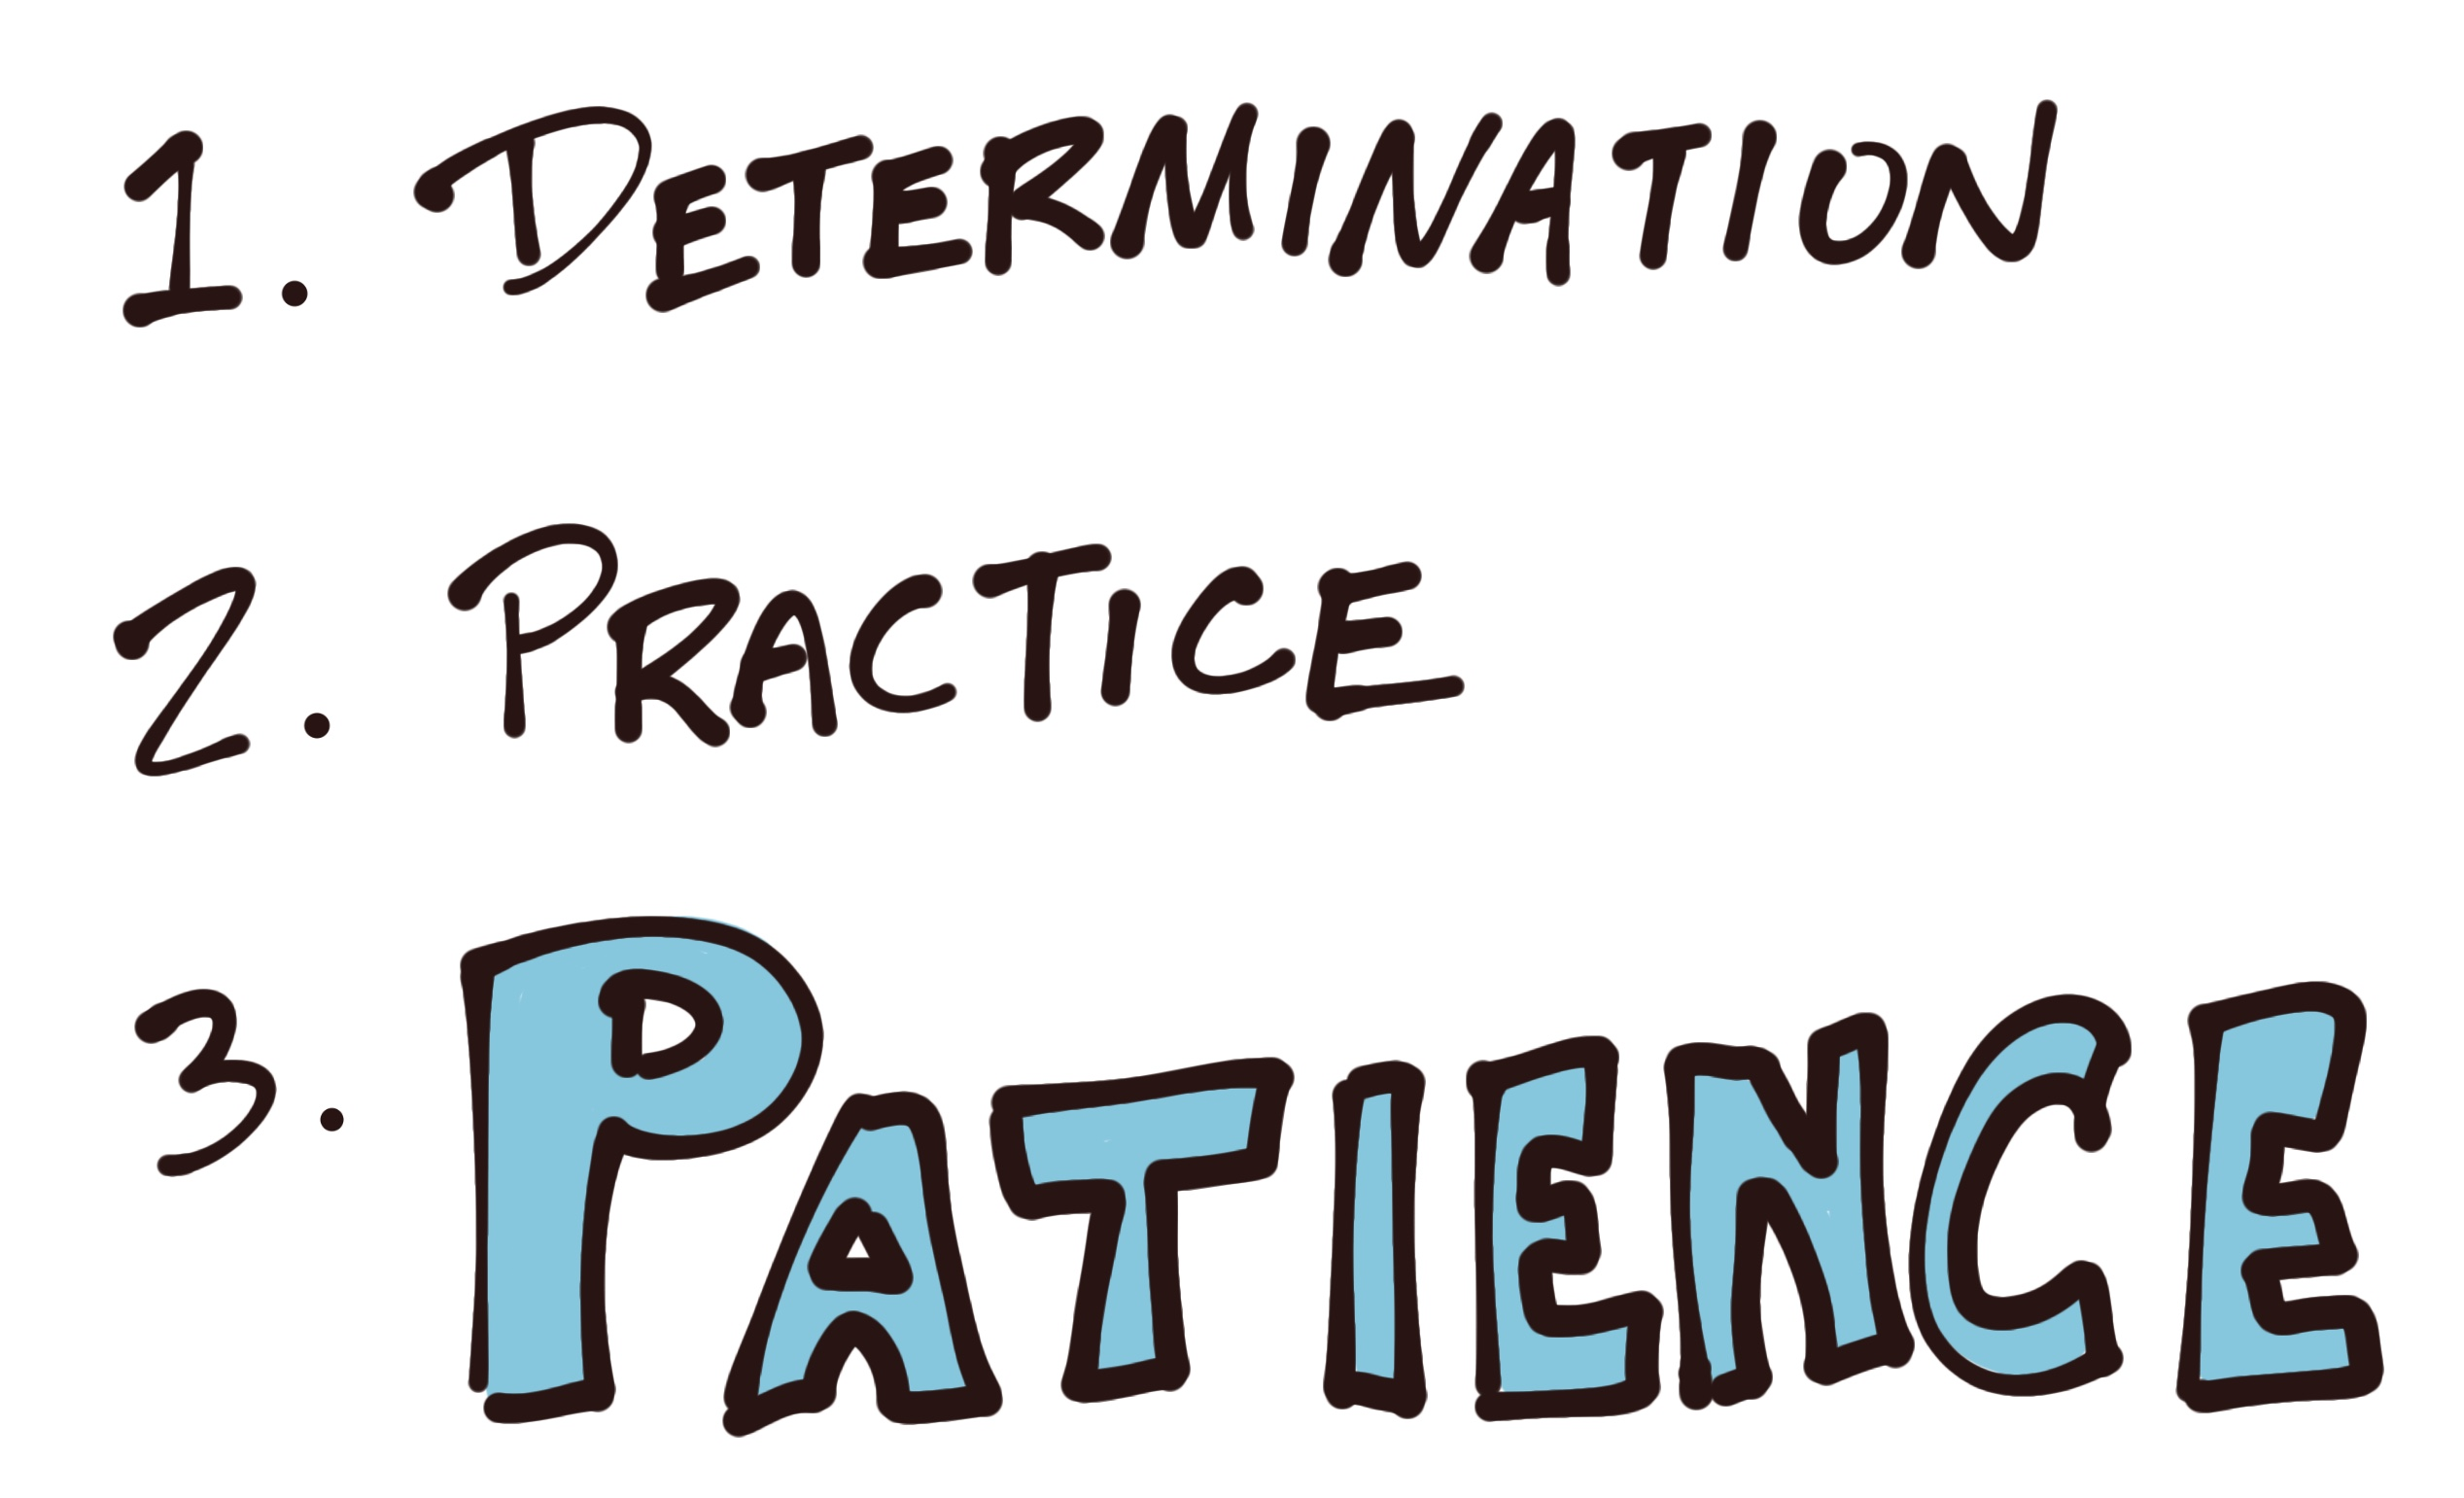 Determination, practice, and patience!!